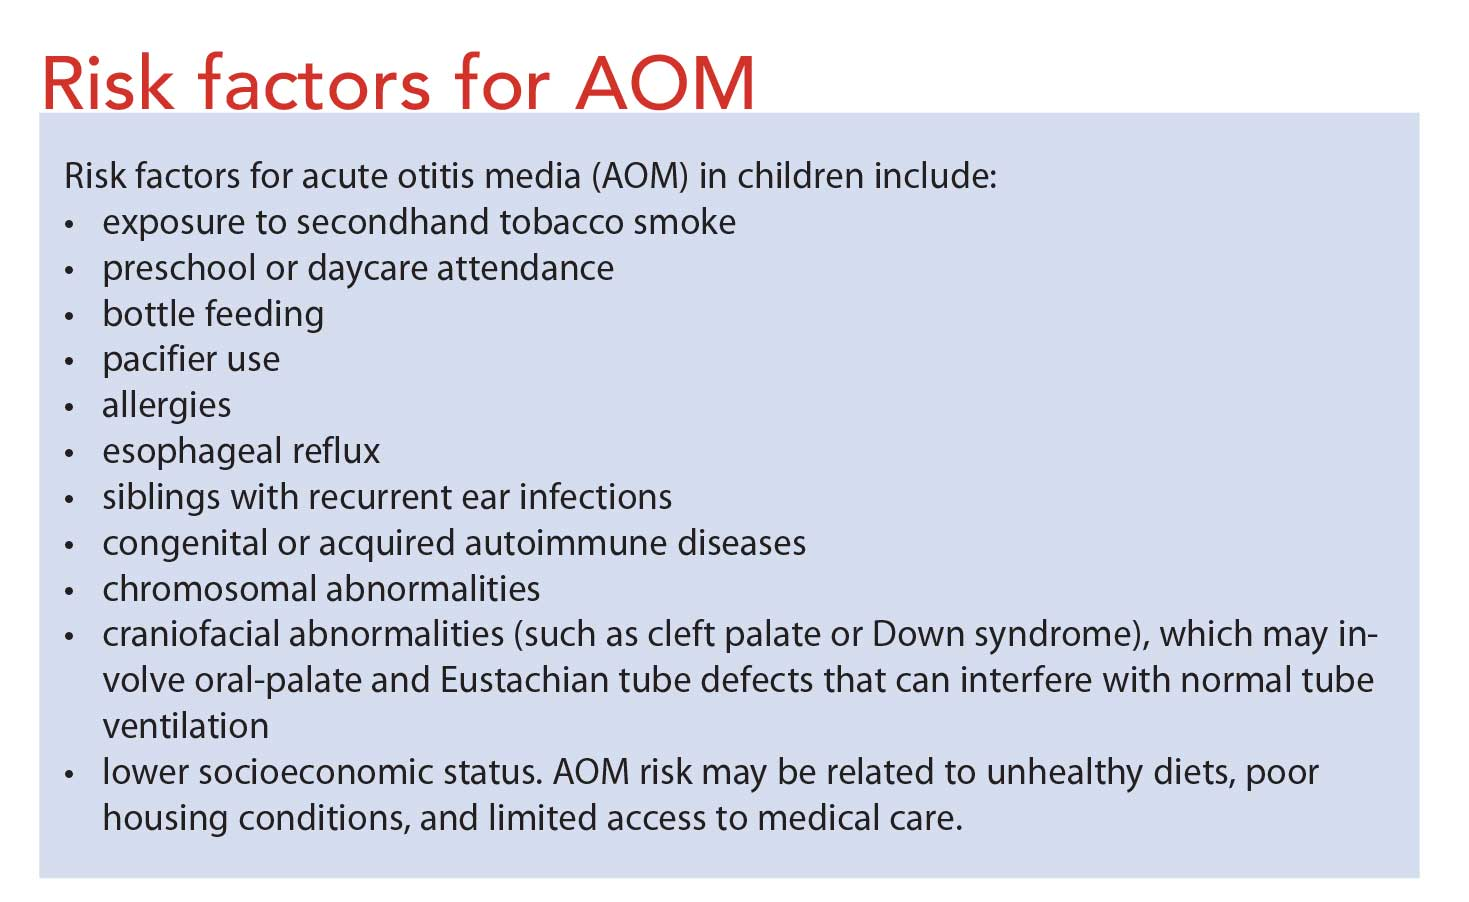 Antibiotic therapy for otitis media in adults